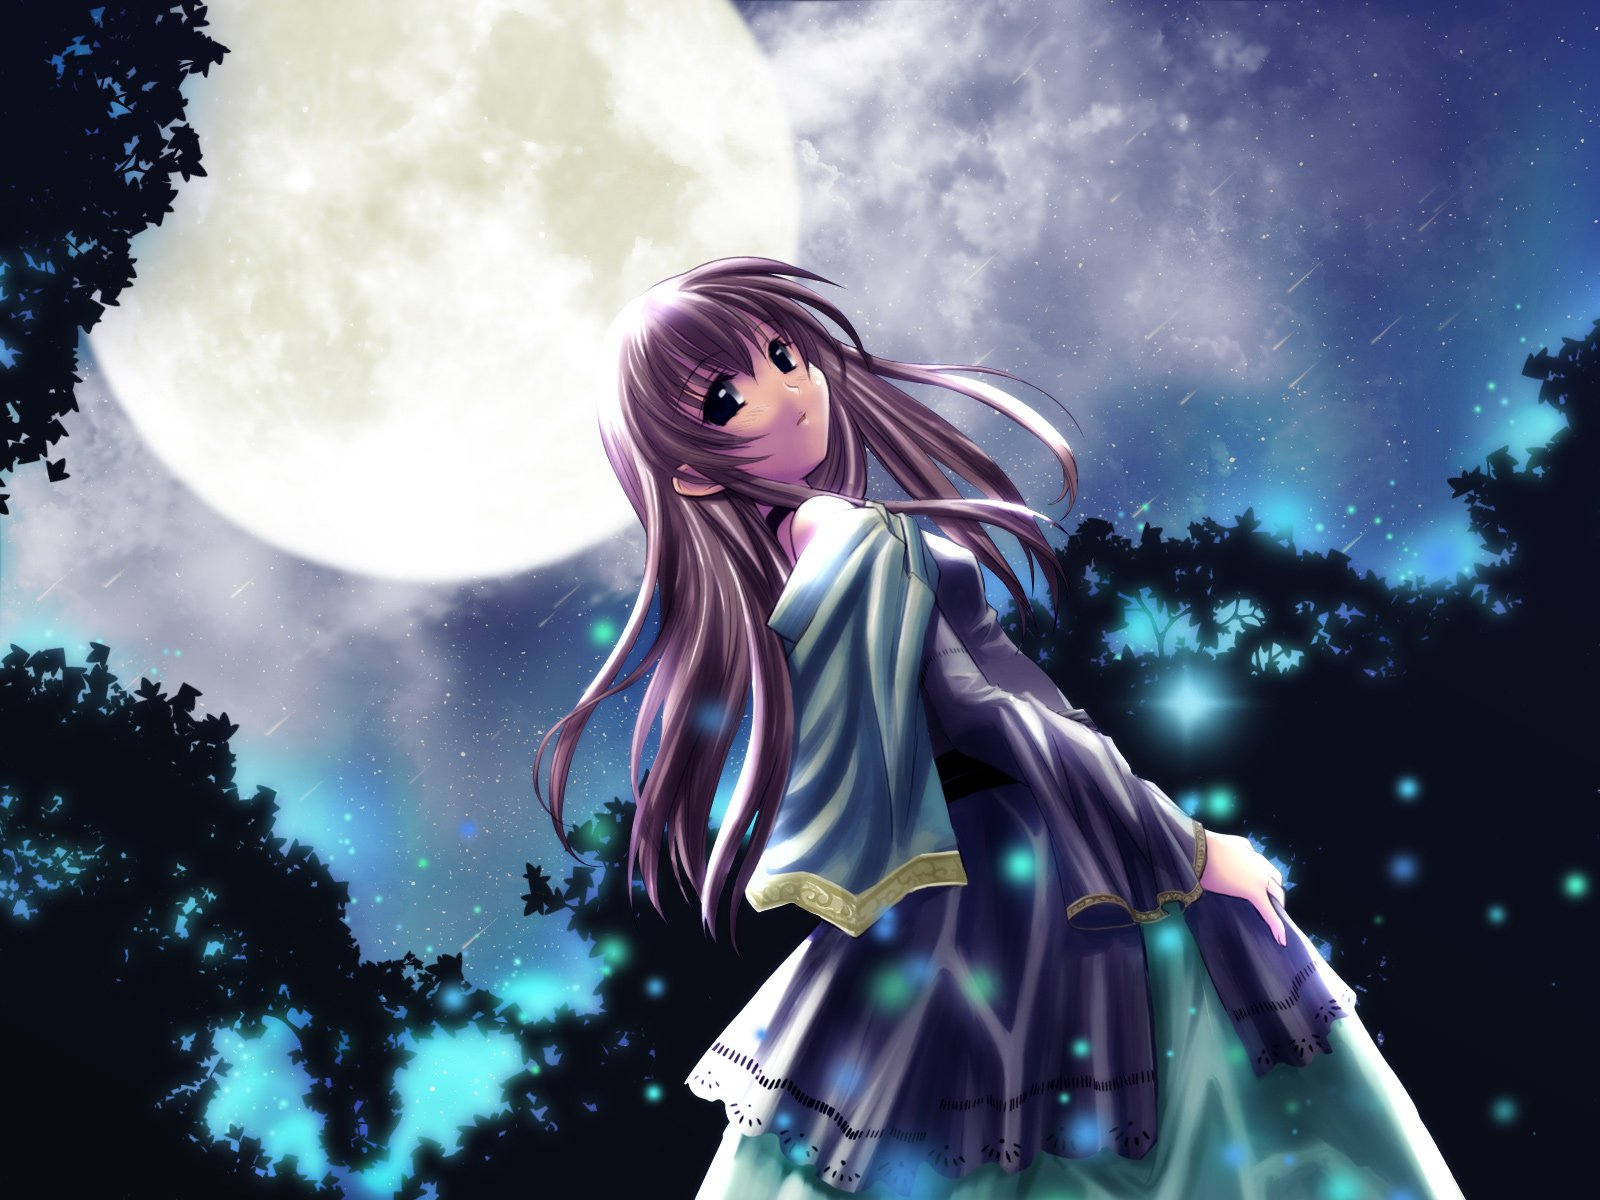 Anime - Club Maniax  Night Moon Girl Blue Sky Wallpaper